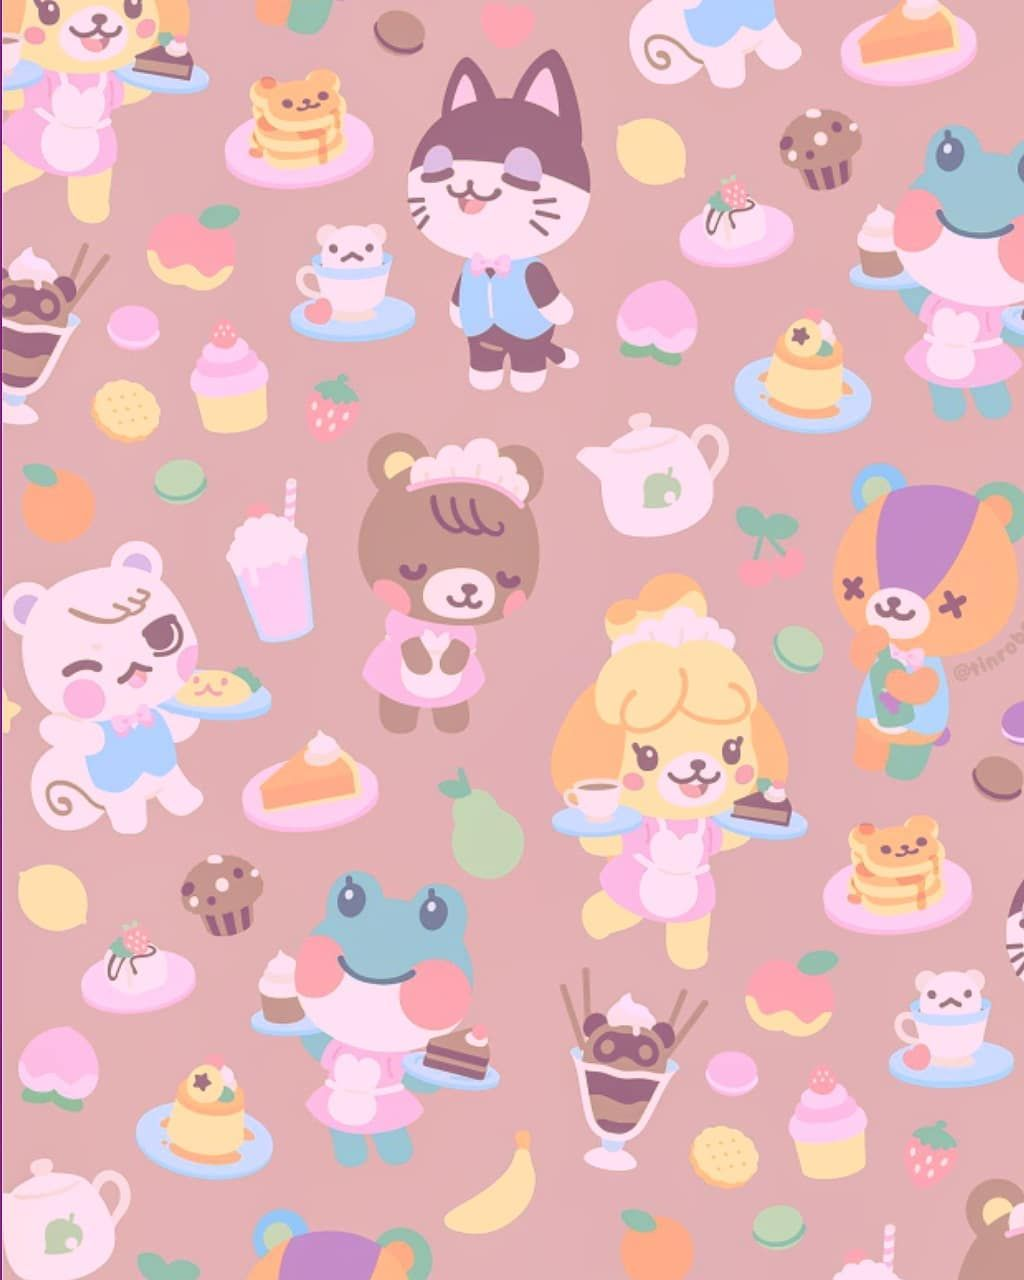 Loving This Artwork I Do Not Know The Owner Acnl Acpc Pastelqrcode 3ds Qrcod Animal Crossing Fan Art Animal Crossing Game Animal Crossing Characters